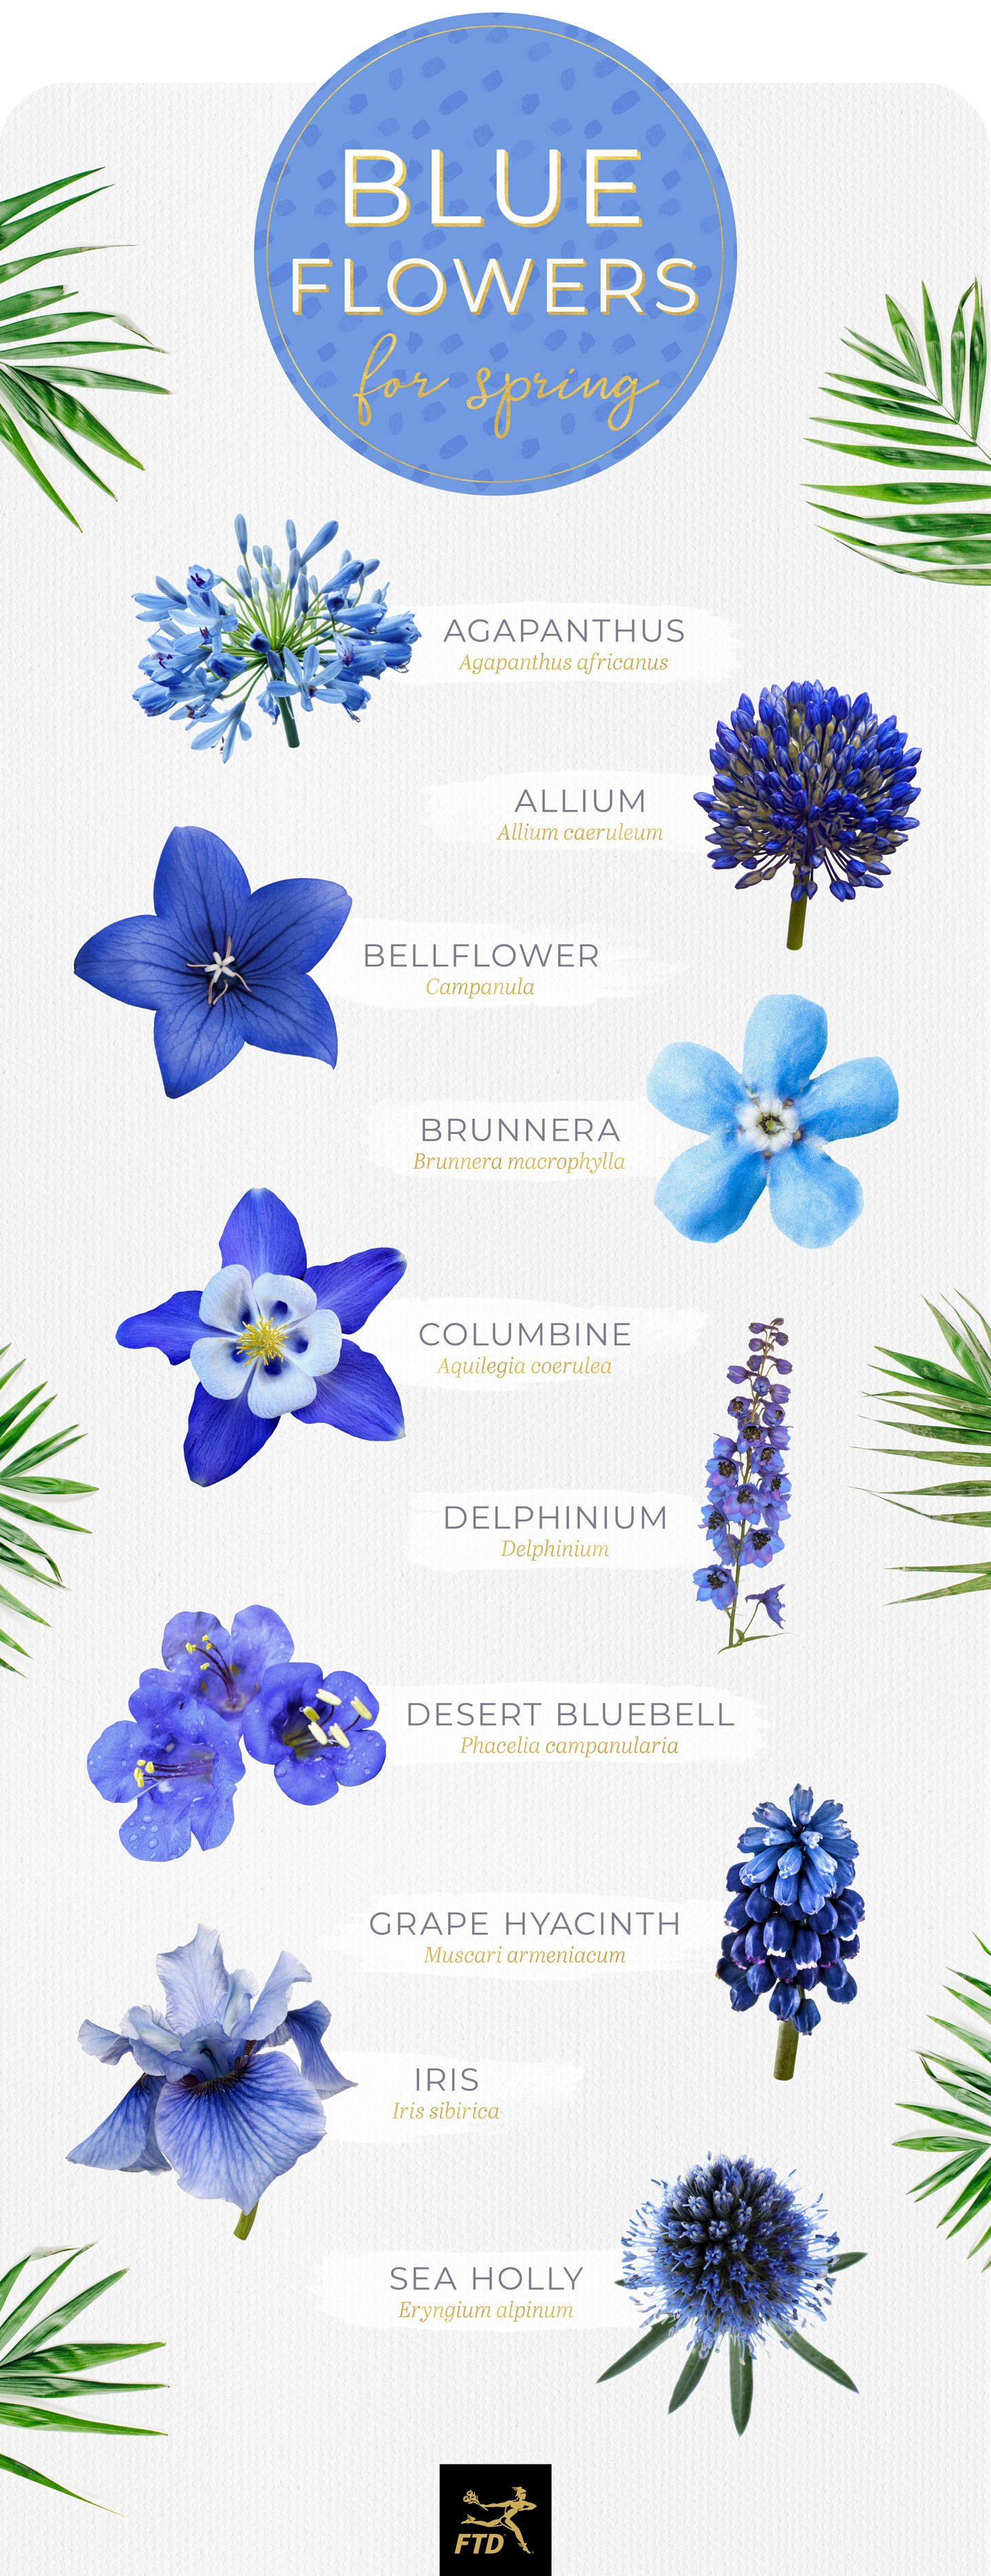 30 Types of Blue Flowers - FTD.com